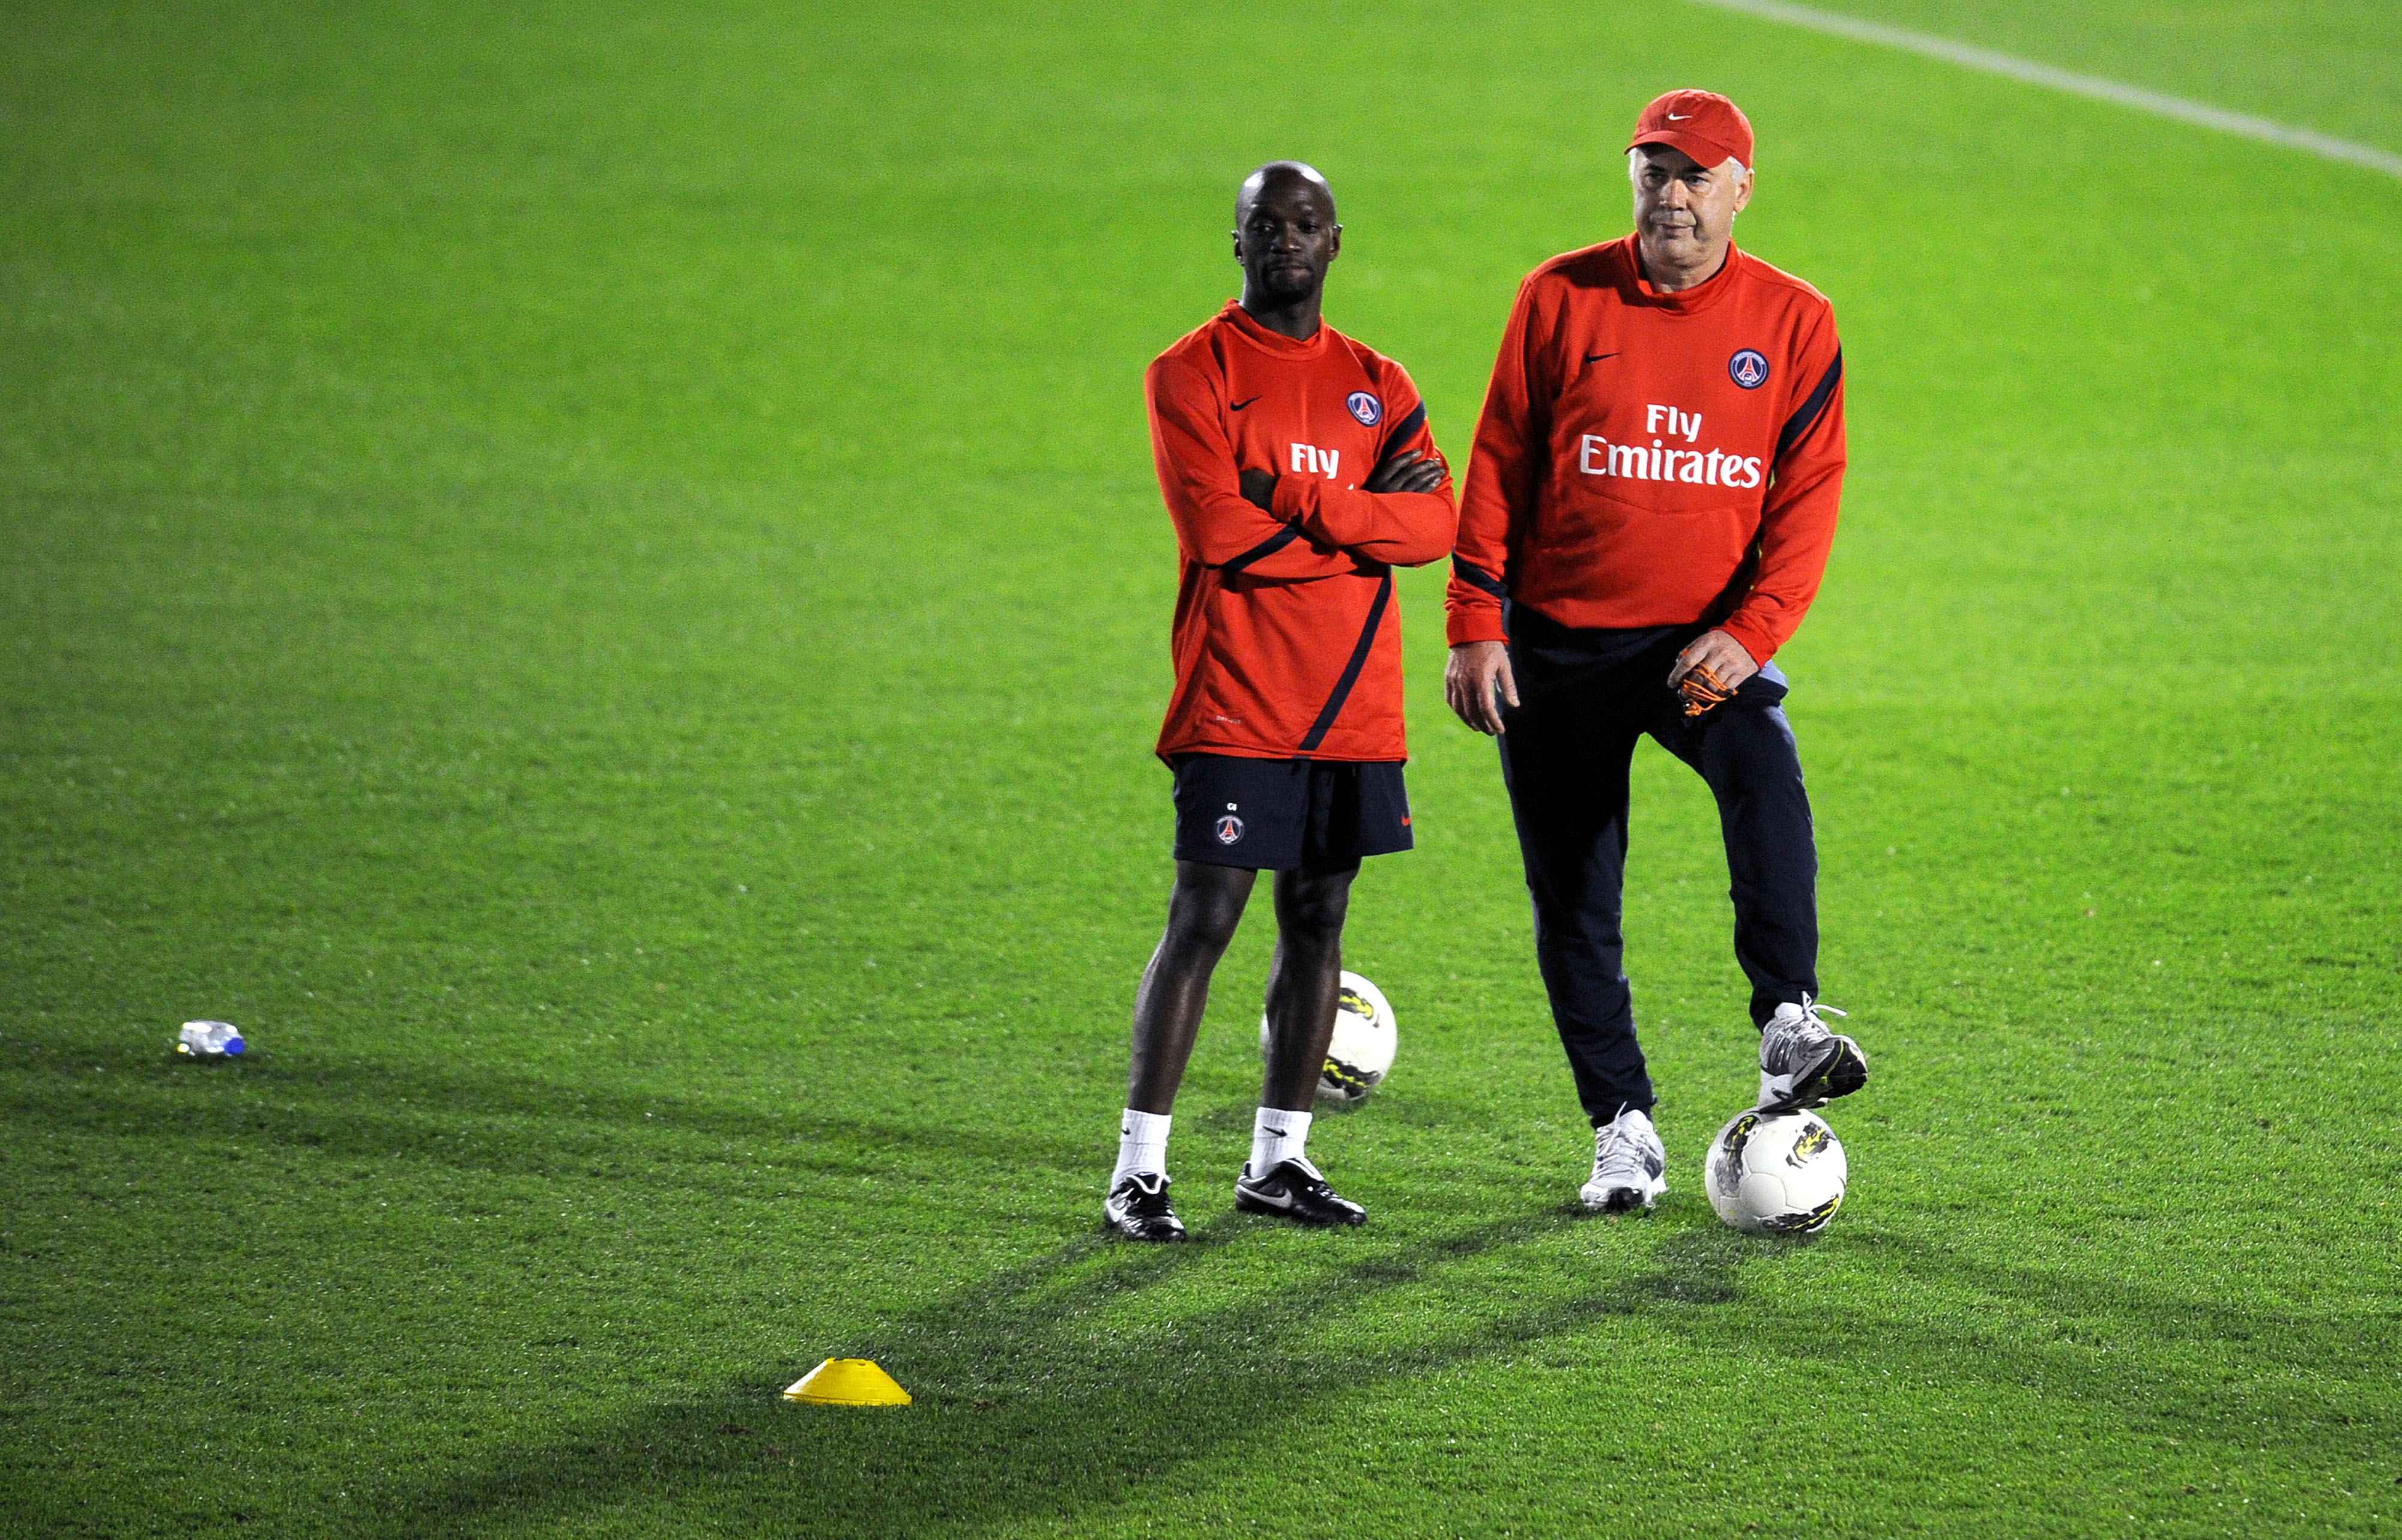 New coach of the Paris Saint-Germain football team Carlo Ancelotti (R) of Italy and new assistant coach Claude Makelele attend a training session at the Aspire complex in Doha on January 2, 2012. PSG will play a friendly football match against AC Milan on January 4 for the Dubai Football Challenege. AFP PHOTO/ FRANCK FIFE (Photo credit should read FRANCK FIFE/AFP/Getty Images)